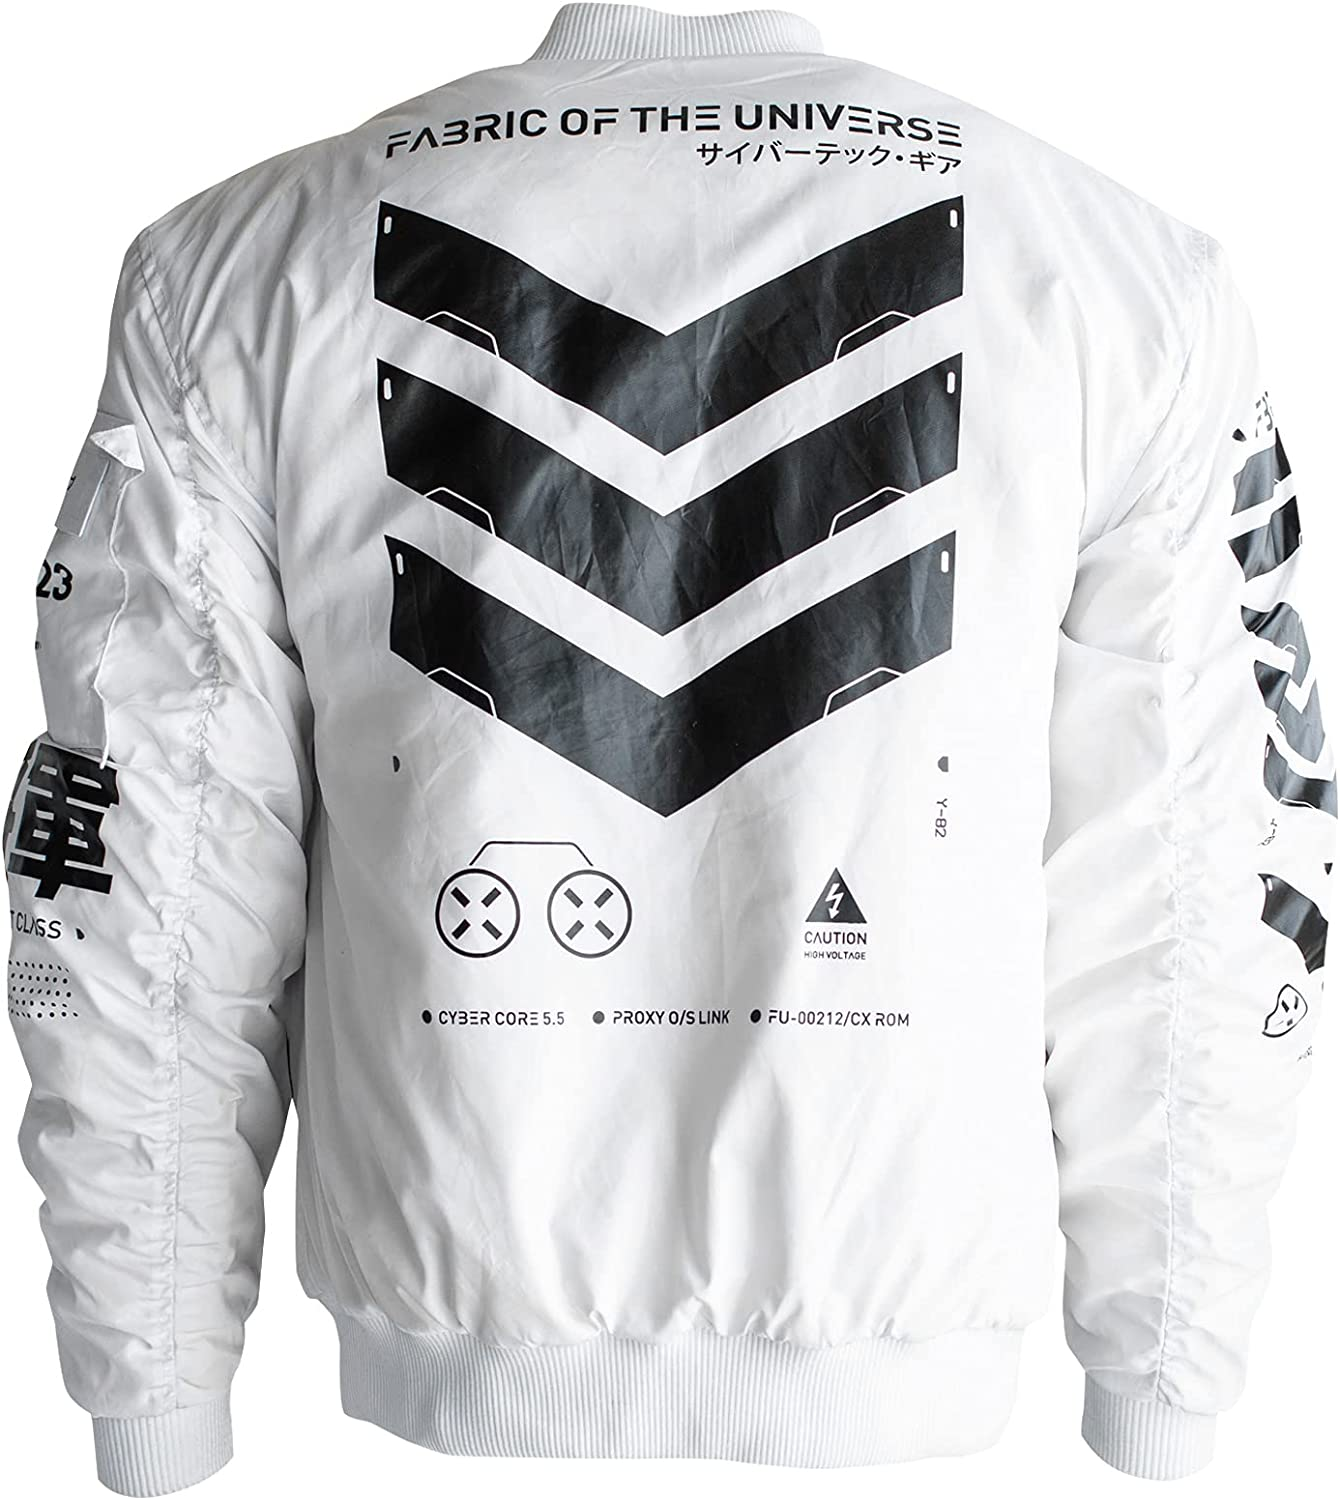 Fabric Seasonal Wrap Introduction of the Max 86% OFF Universe Techwear Fashion Graphic Bomber Jacket